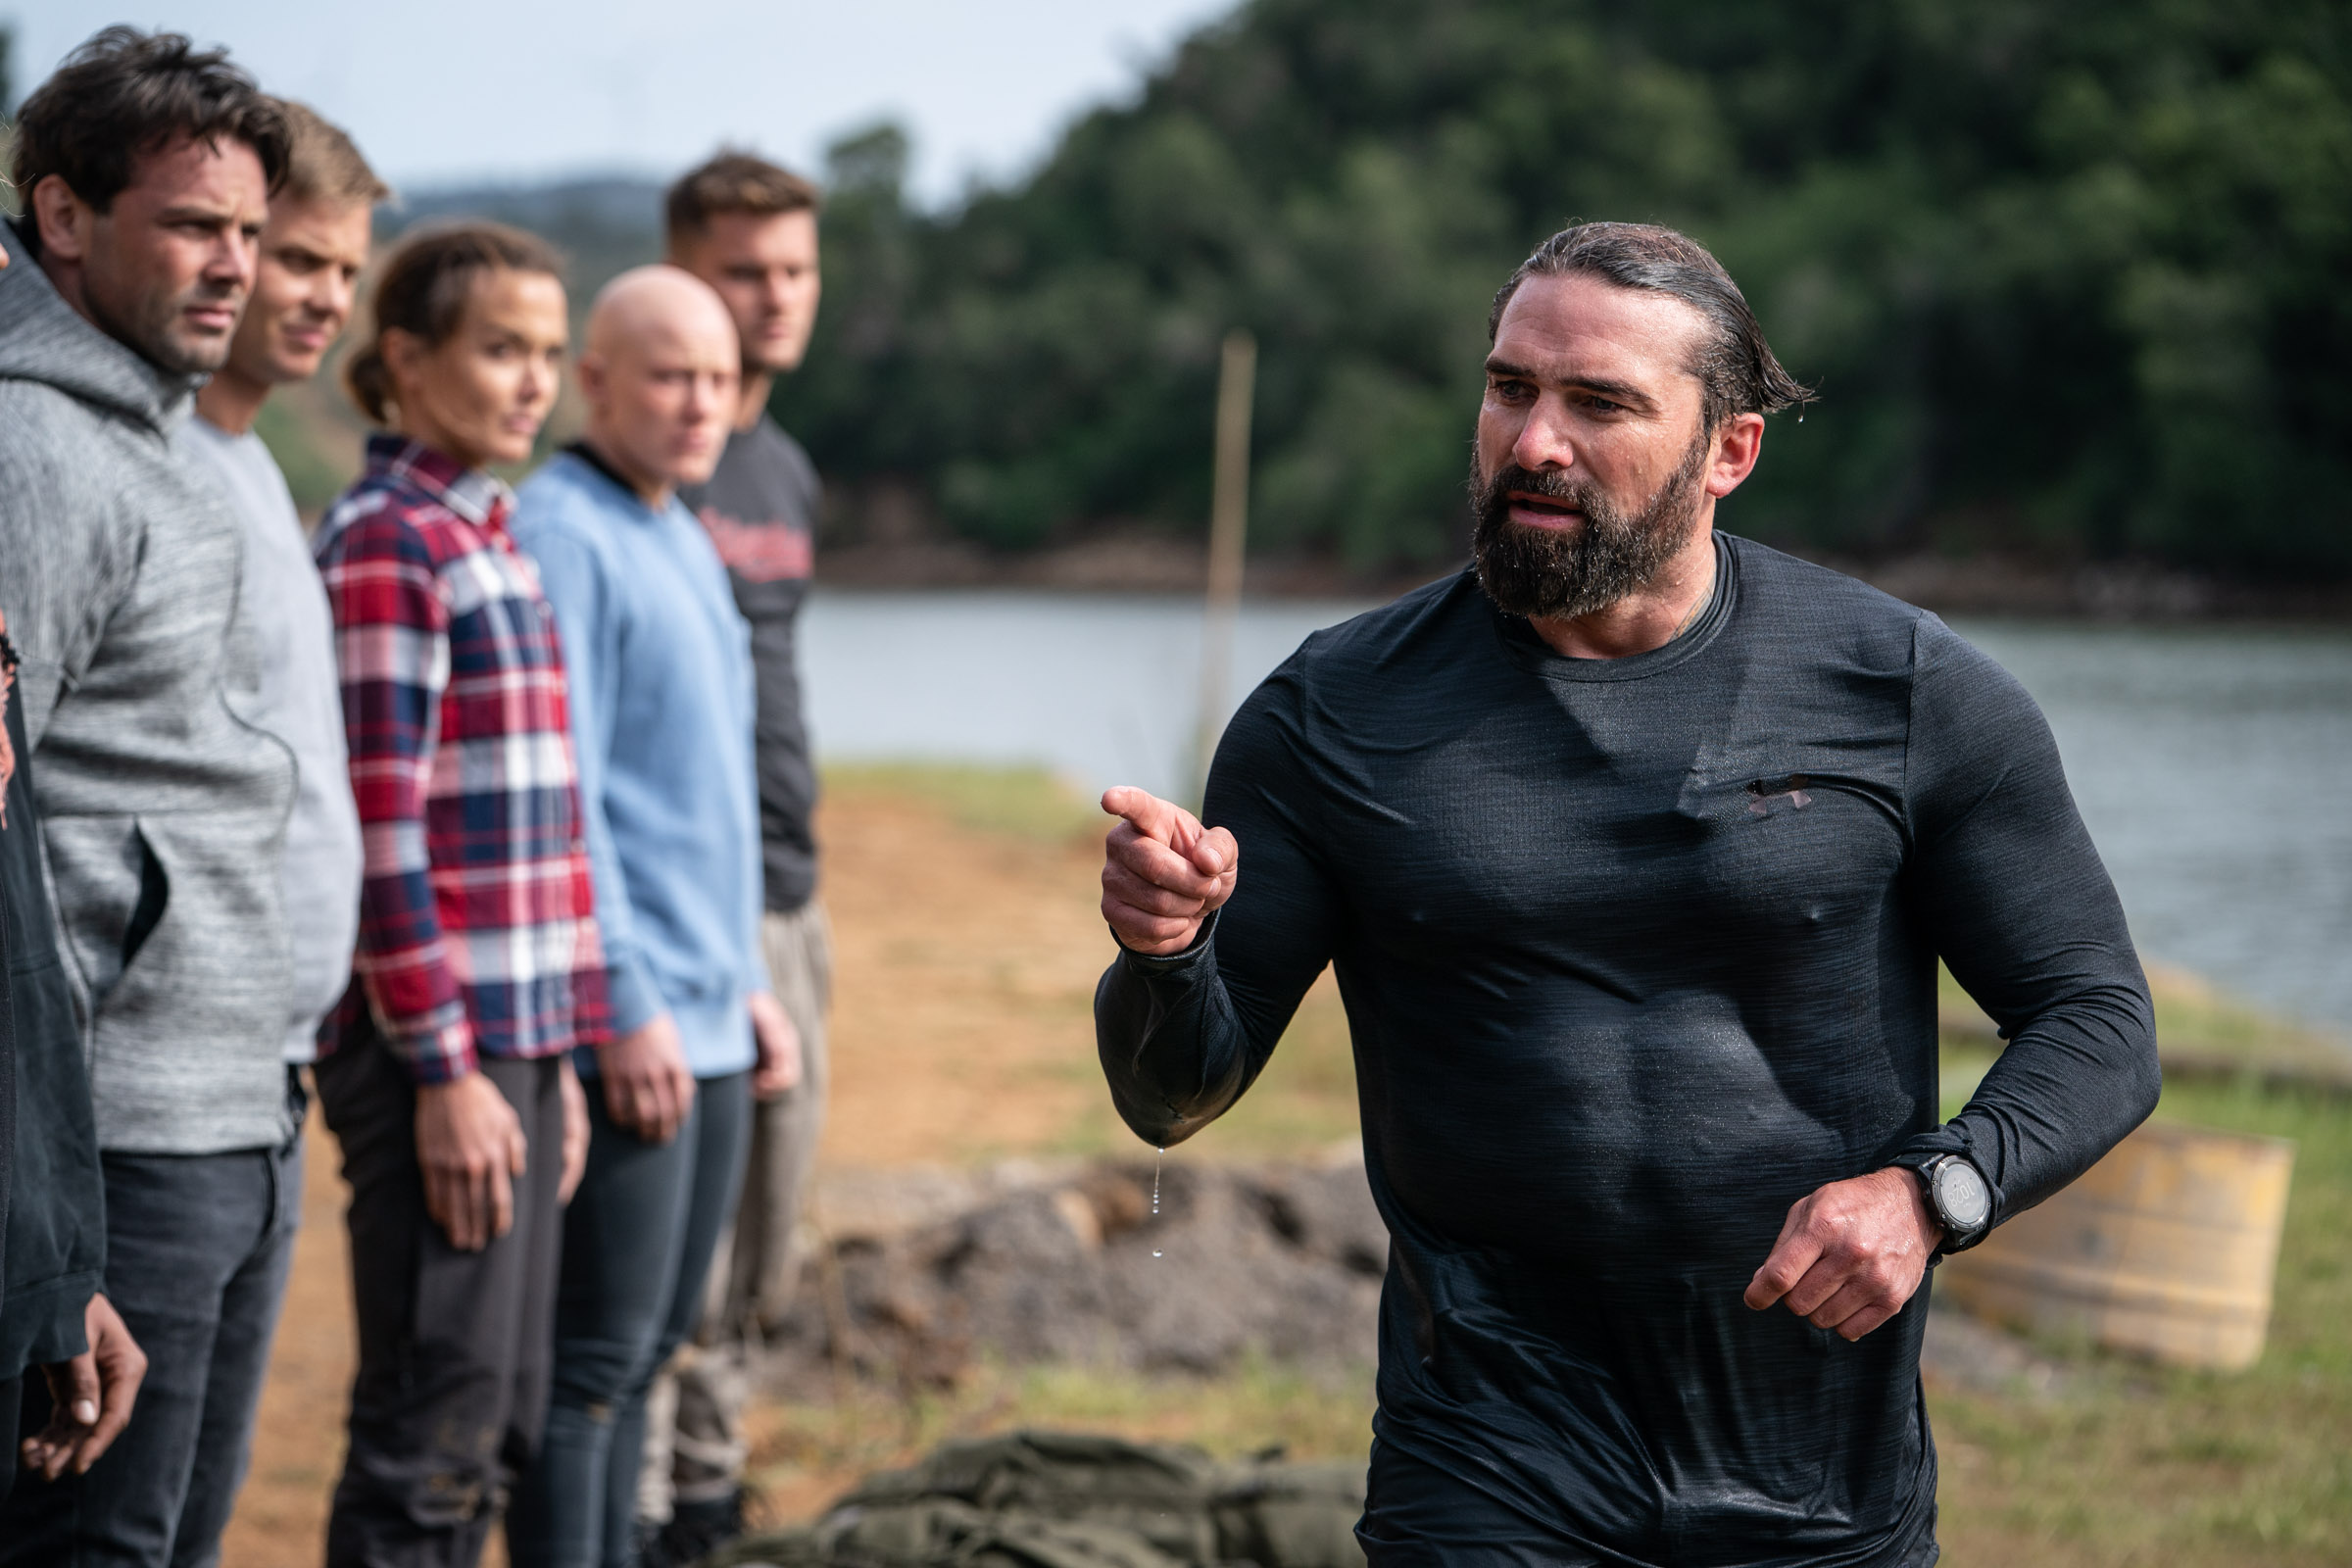 Chief Instructor Ant Middleton meets the recruits  Episode 1 - Courage  Minnow Films / Channel 4